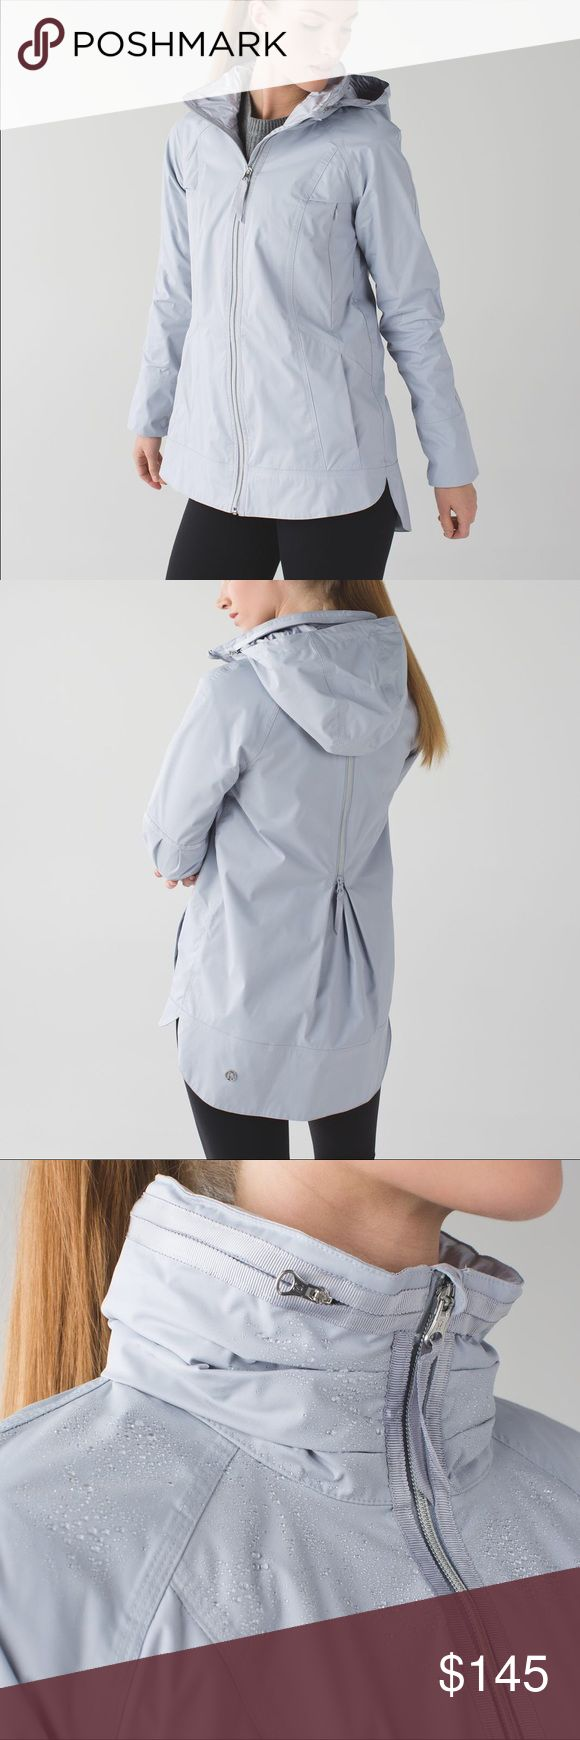 Lululemon Fo Drizzle - Silver Fox Aka Rain Supreme. EUC except for that the packable hood was previously cut out of the zip collar pouch. Collar looks like last stock photo when zipped, just doesn't have hood inside as normal. Price reflects this so no low balls. Will accept 🅿️🅿️ or select trades. lululemon athletica Jackets & Coats